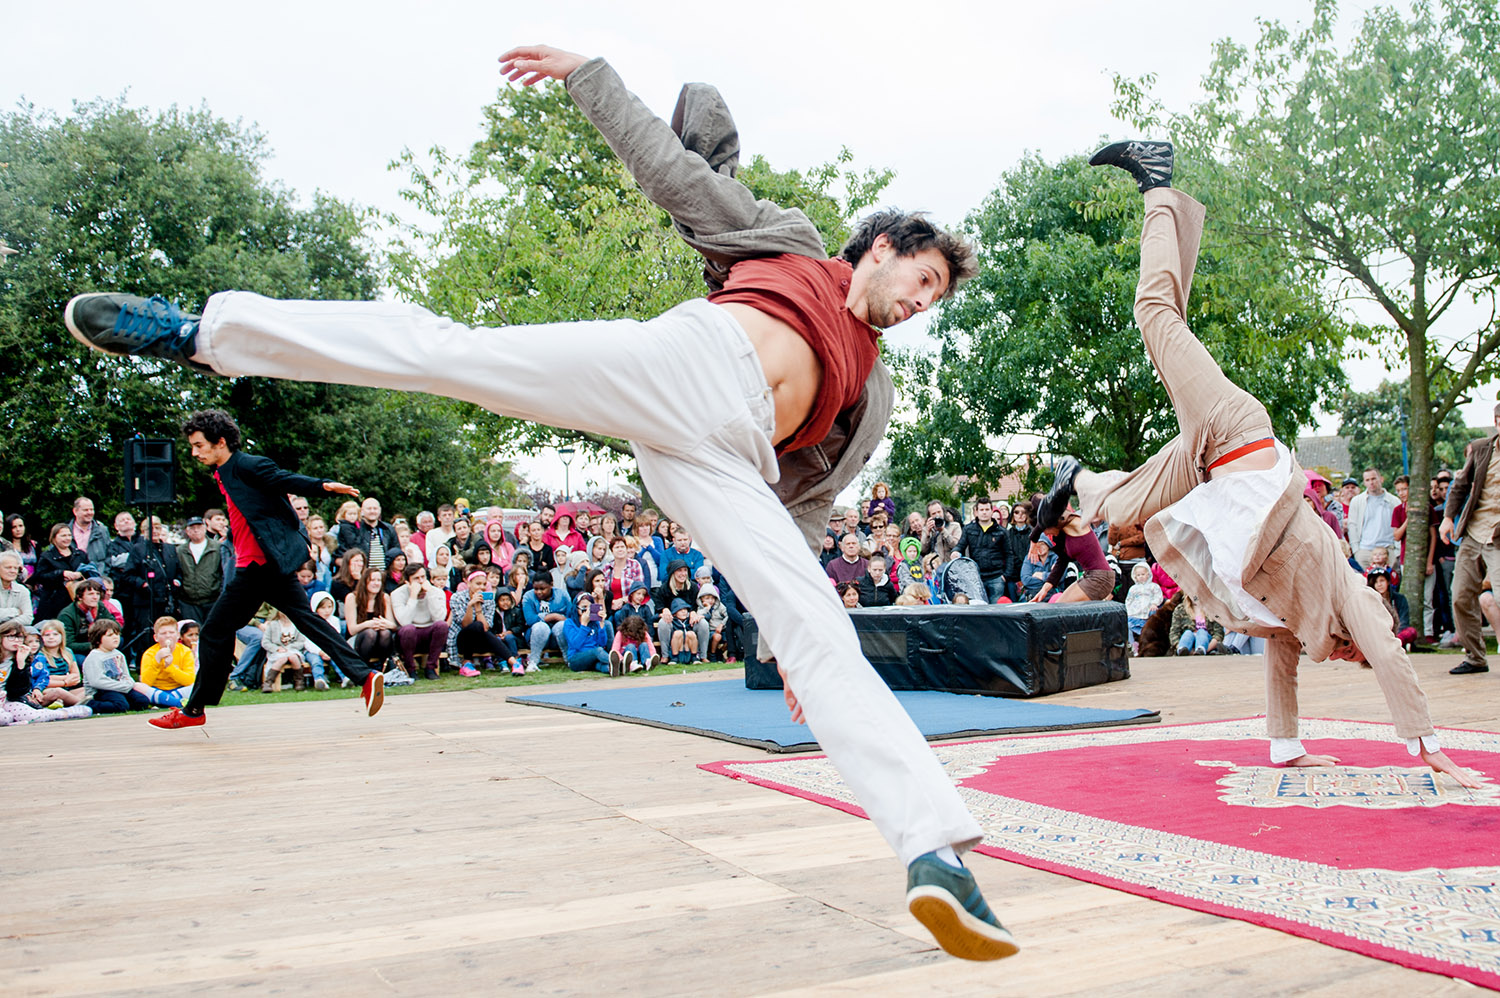 jma-photography-event-dancers-leaping.jpg